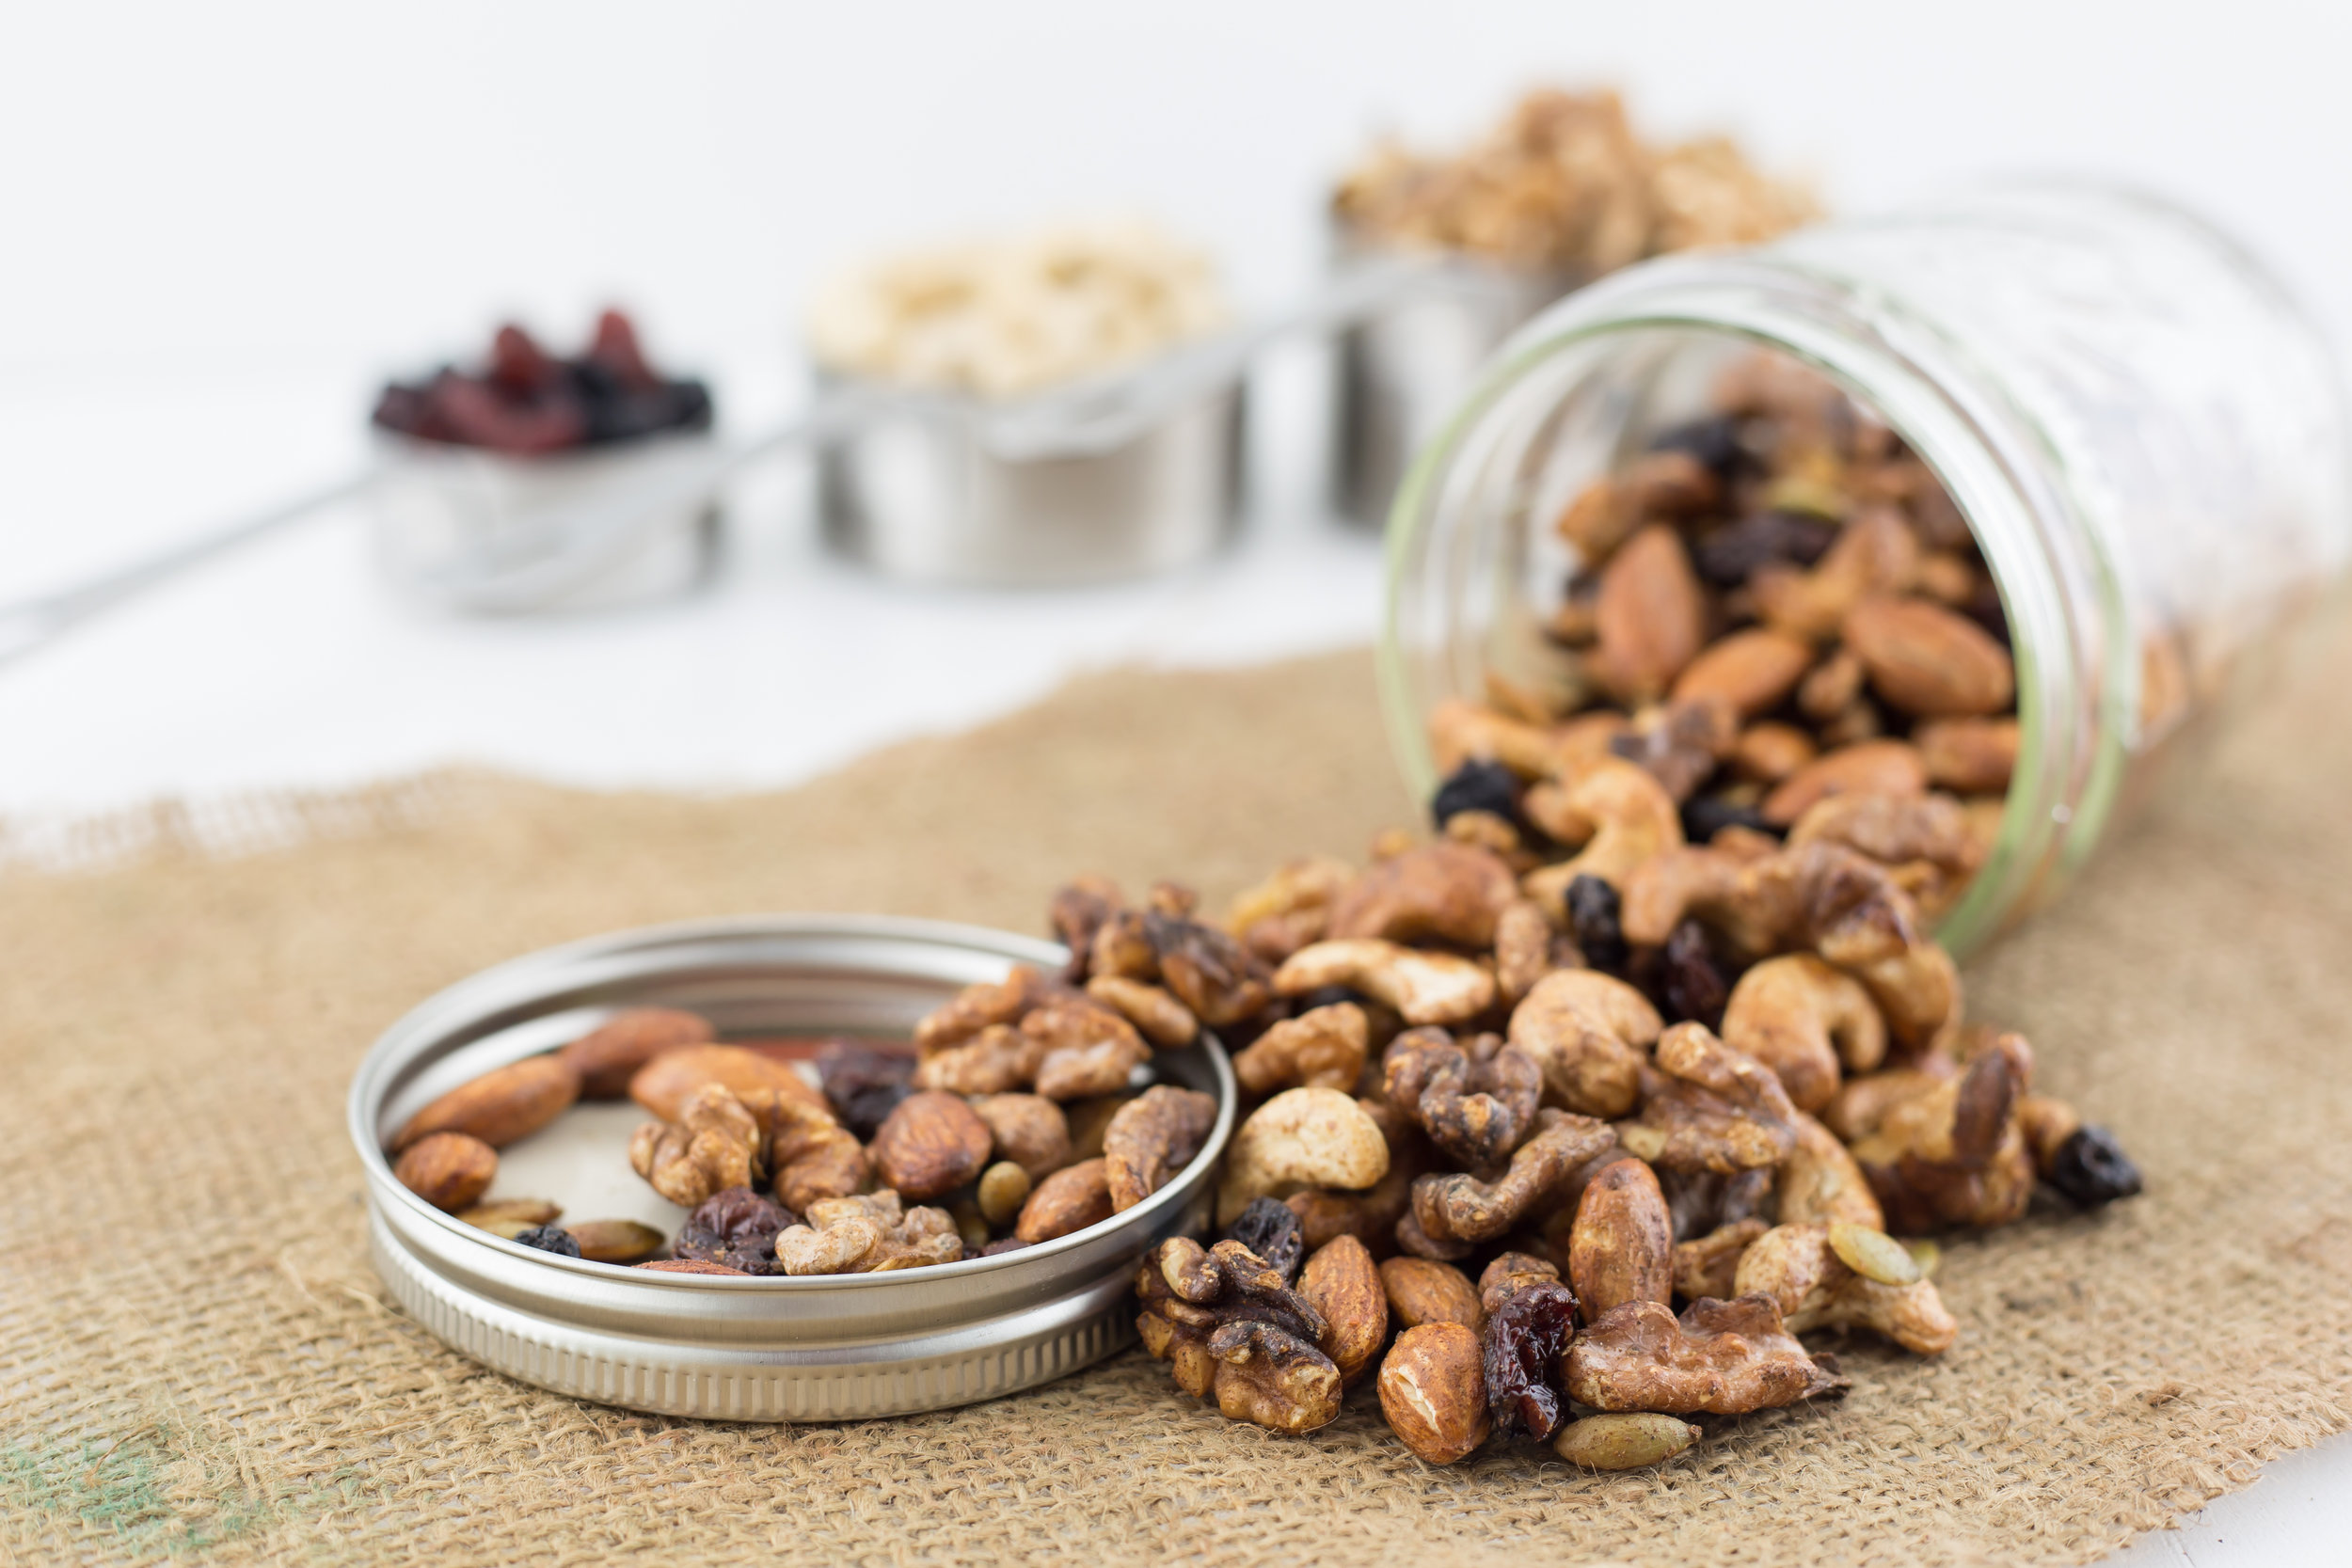 Paleo, Primal, Healthy Recipes, Whole Foods, Real Food, Nuts, Snack Mix, Trail Mix, Define Fettle,